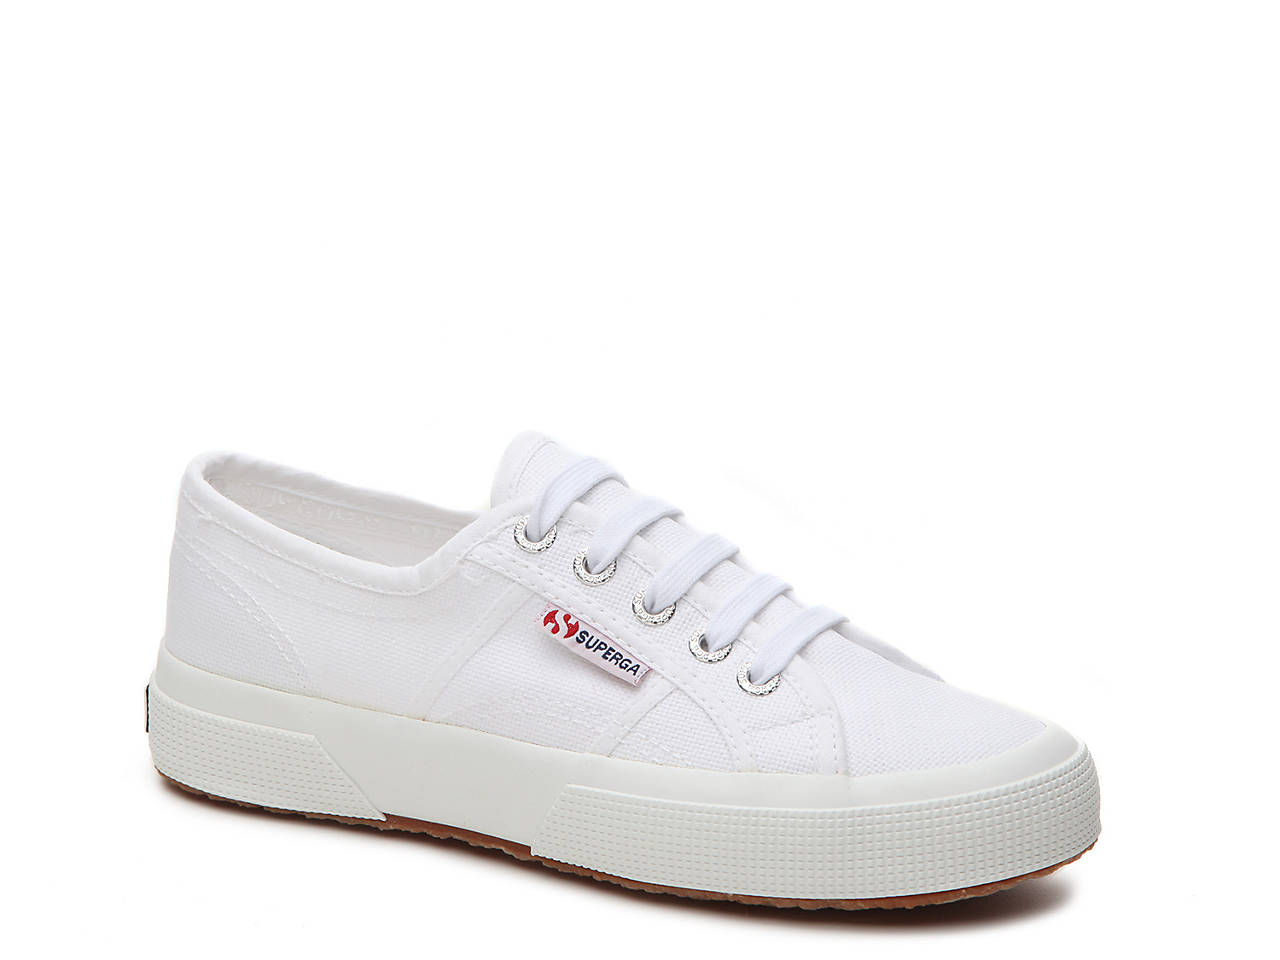 eb60485c30c7 Superga 2750 Cotu Classic Sneaker Women s Shoes